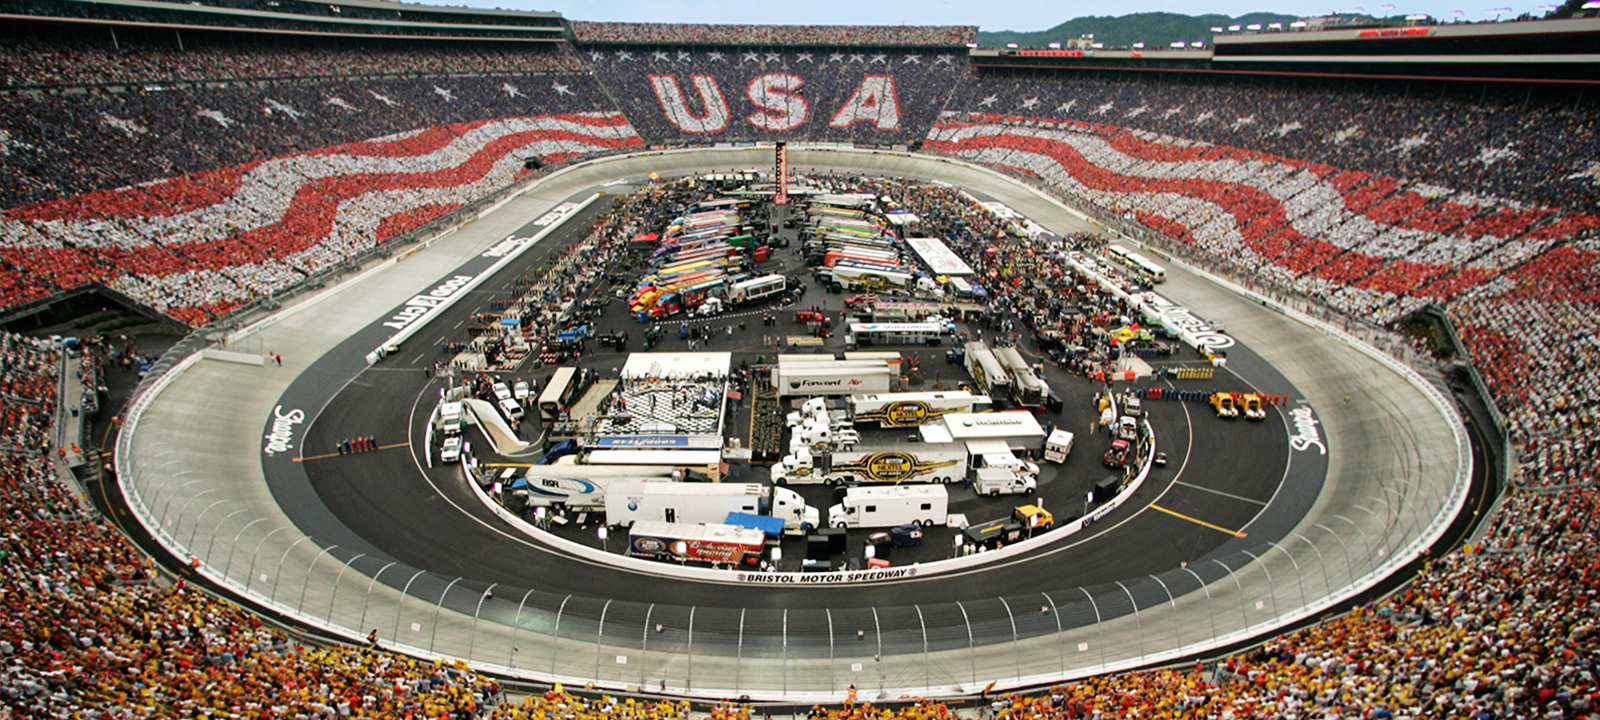 Bristol Motor Speedway Card Stunt Stadium Card Stunts By